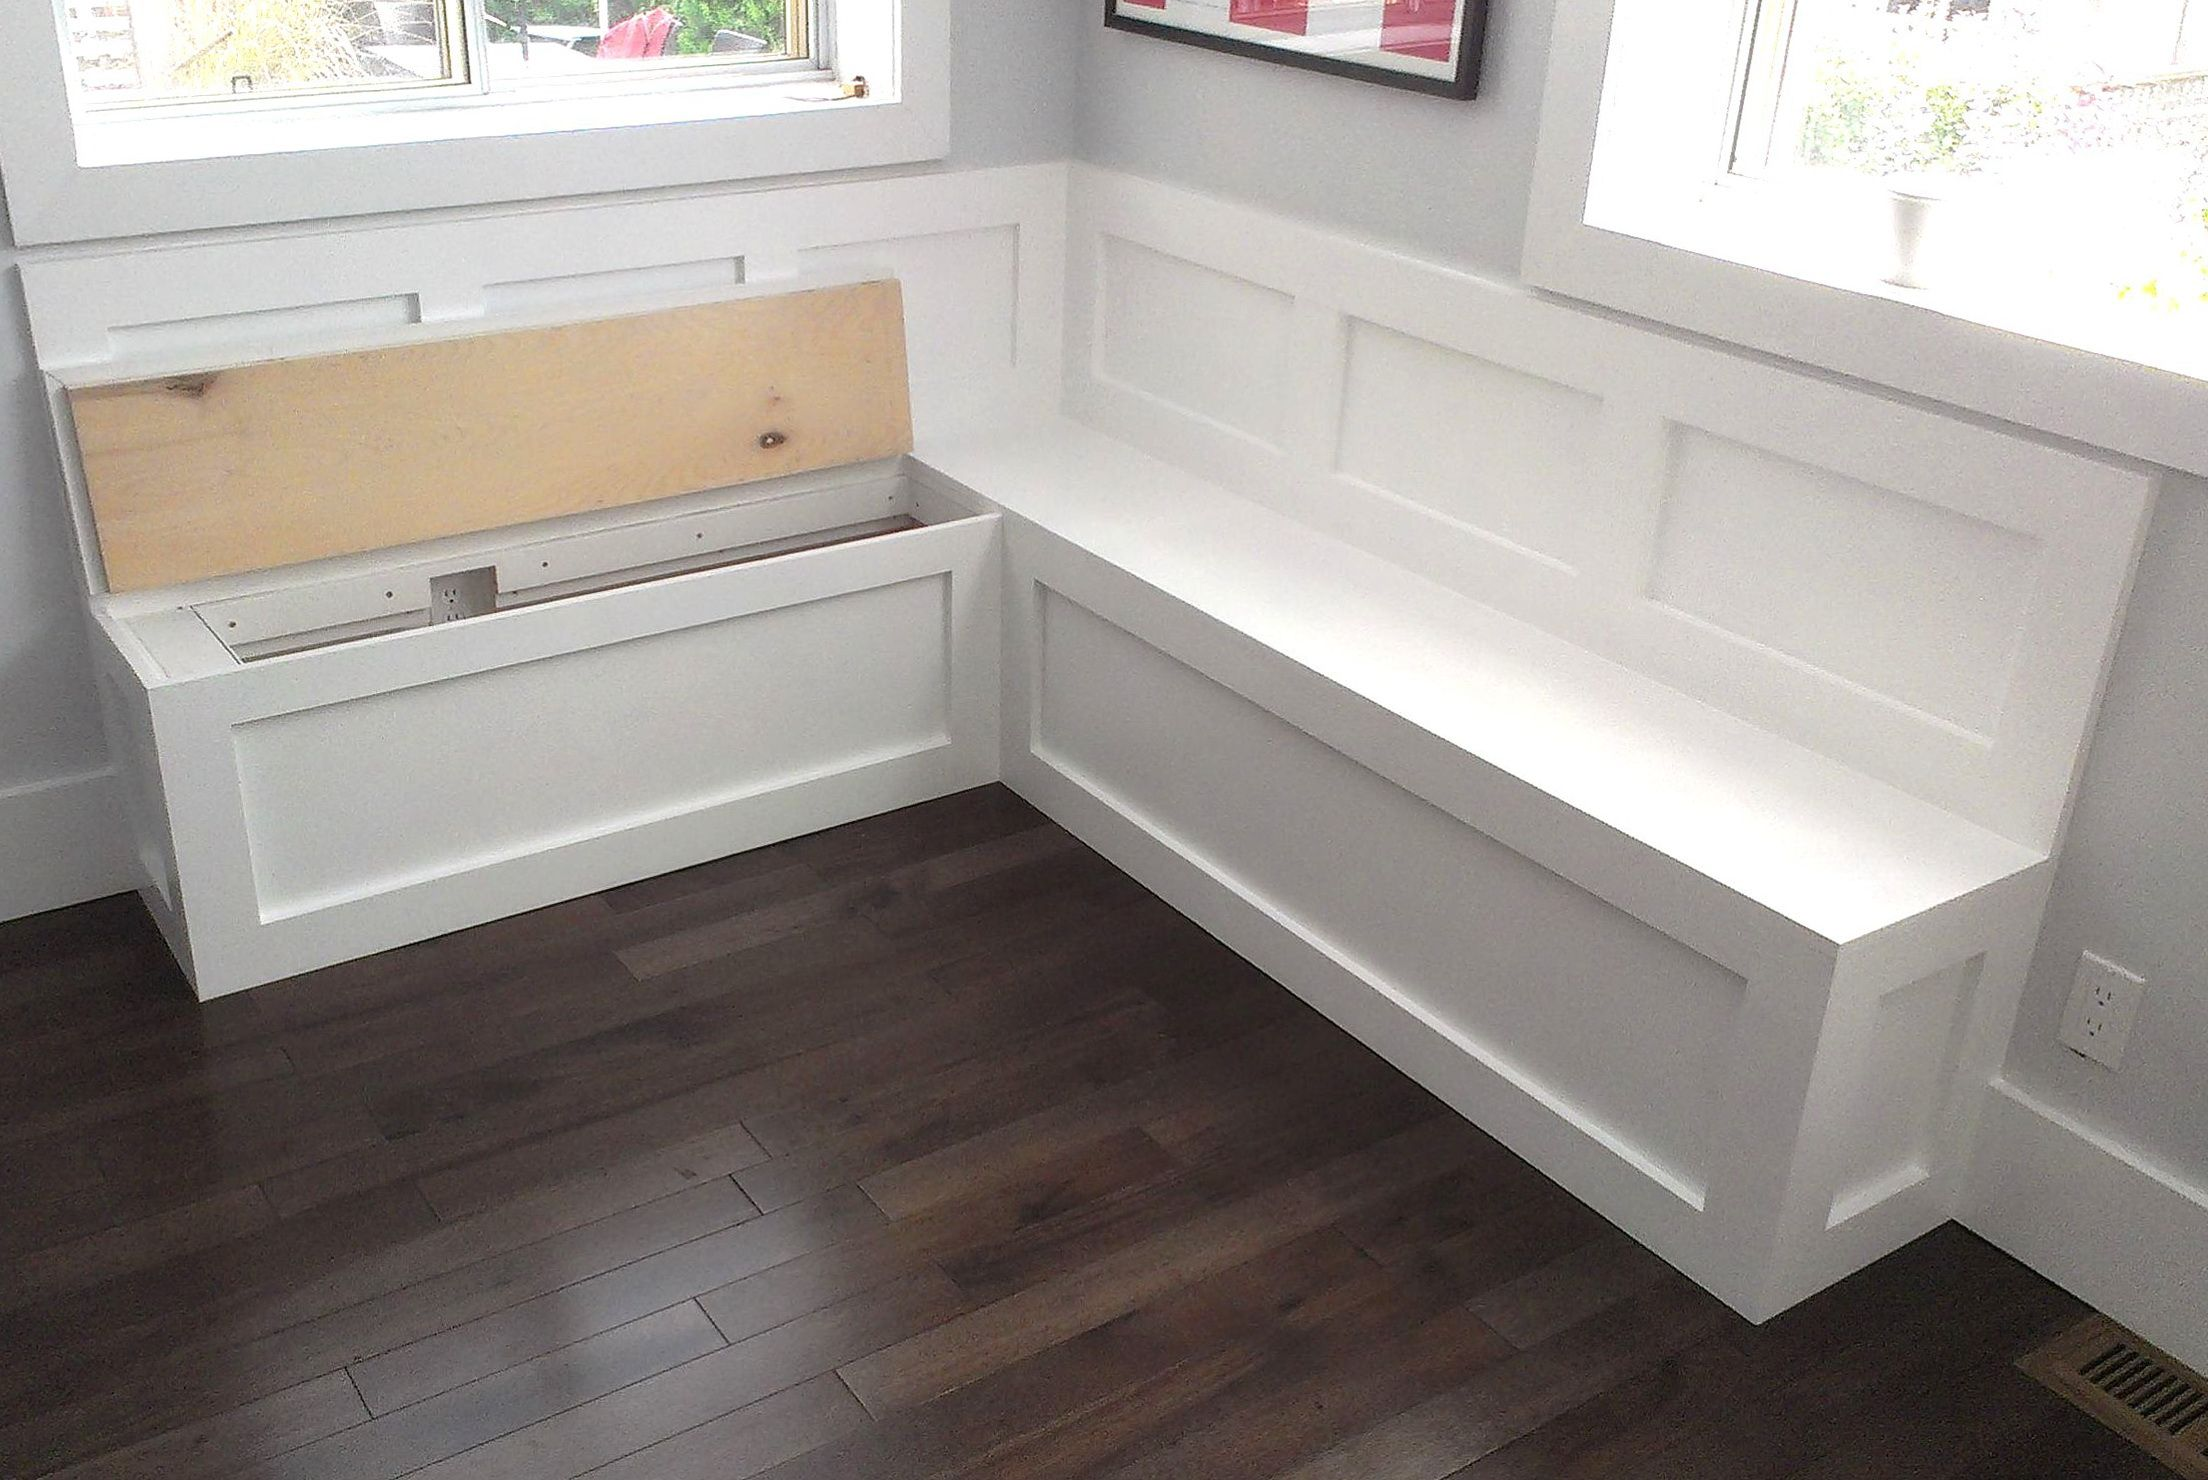 Storage Bench Seating Kitchen Kitchen Storage Bench Bench Seating Kitchen Kitchen Corner Bench